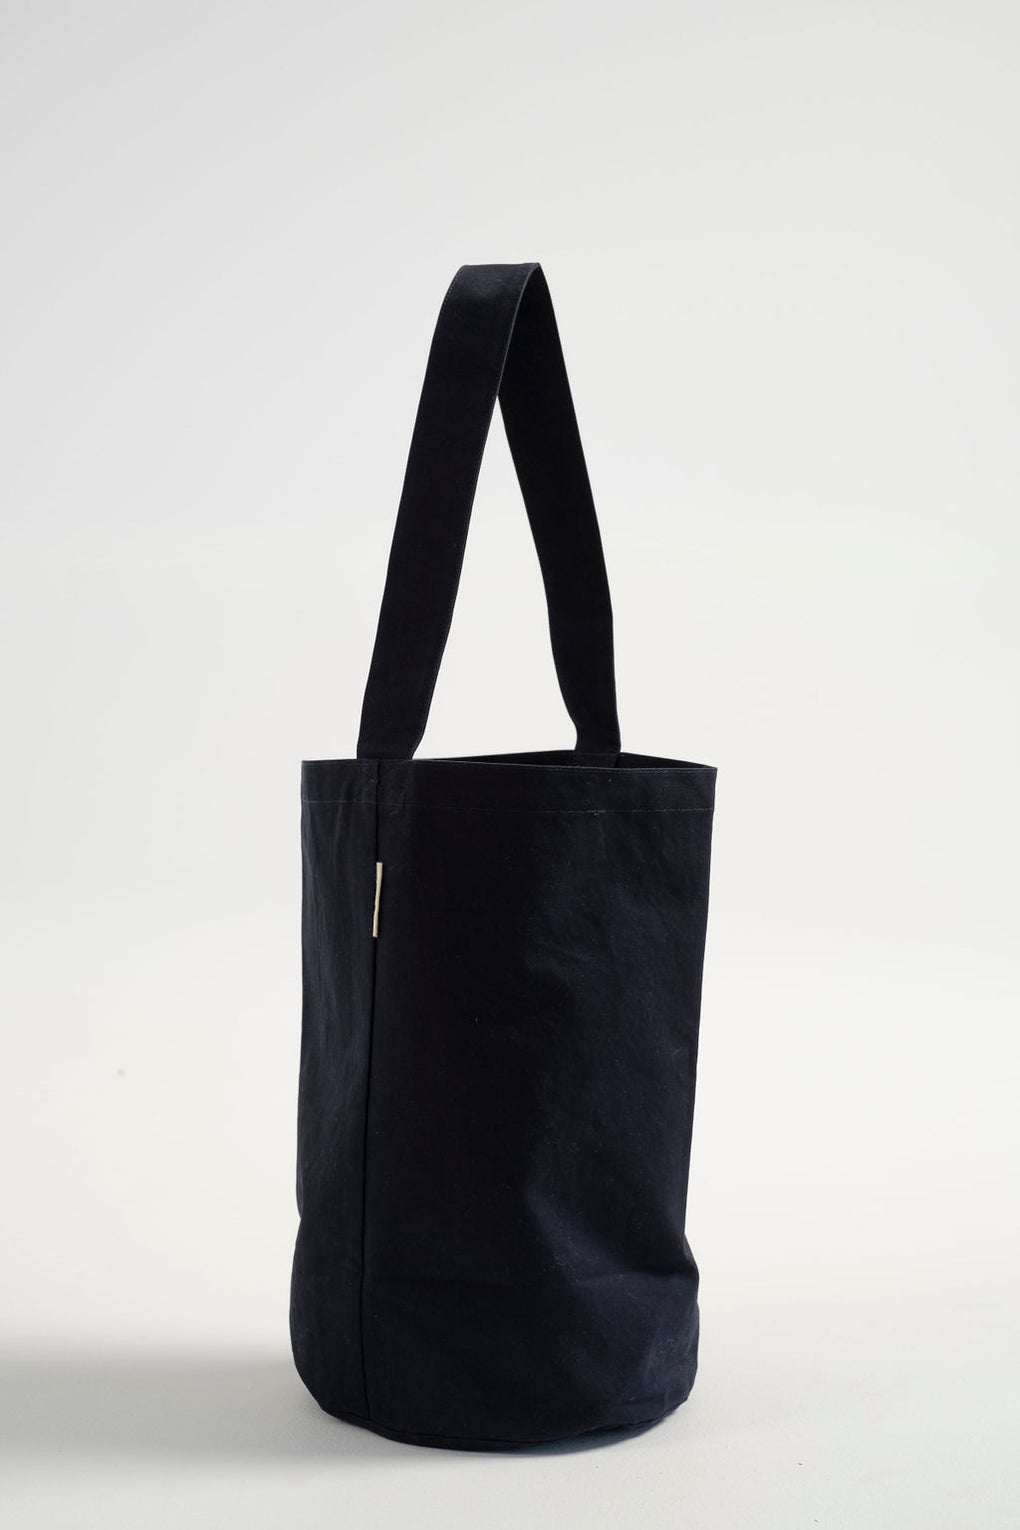 7115 by Szeki-Classic Carry All Bag-navy tote bag-blue tote bag-Idun-St. Paul